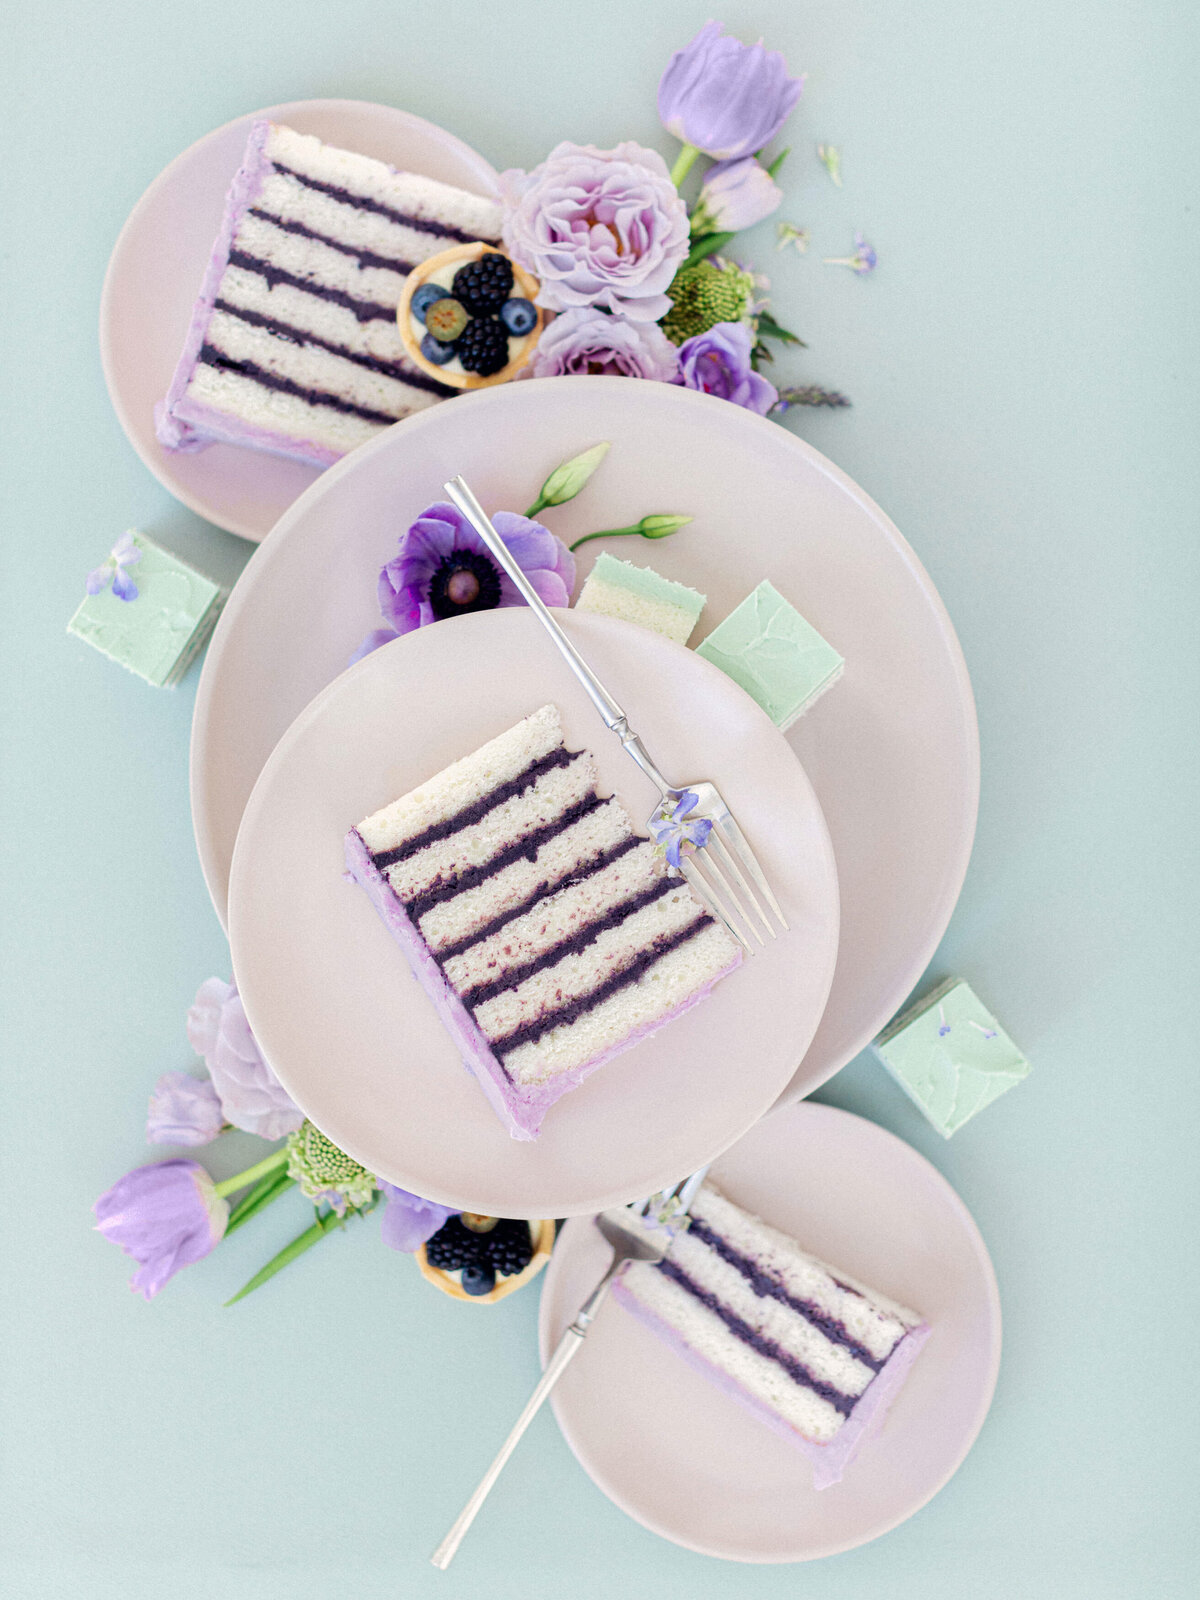 purple cake slices laying on plates surrounded by purple florals against green background wedding flat lay